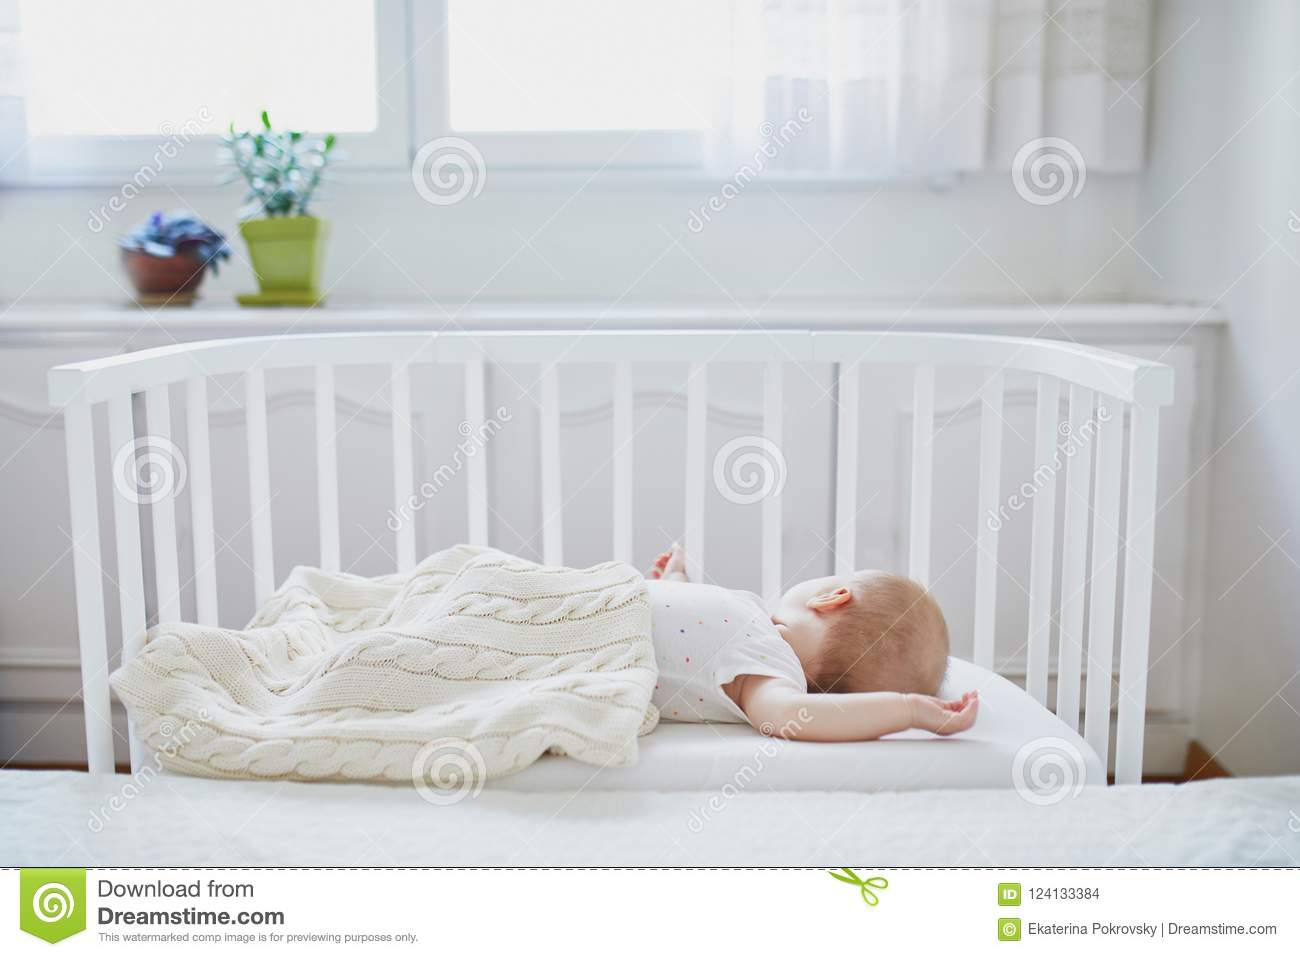 Baby Cots That Attach To Beds Baby Girl Sleeping In Co Sleeper Crib Stock Photo Image Of